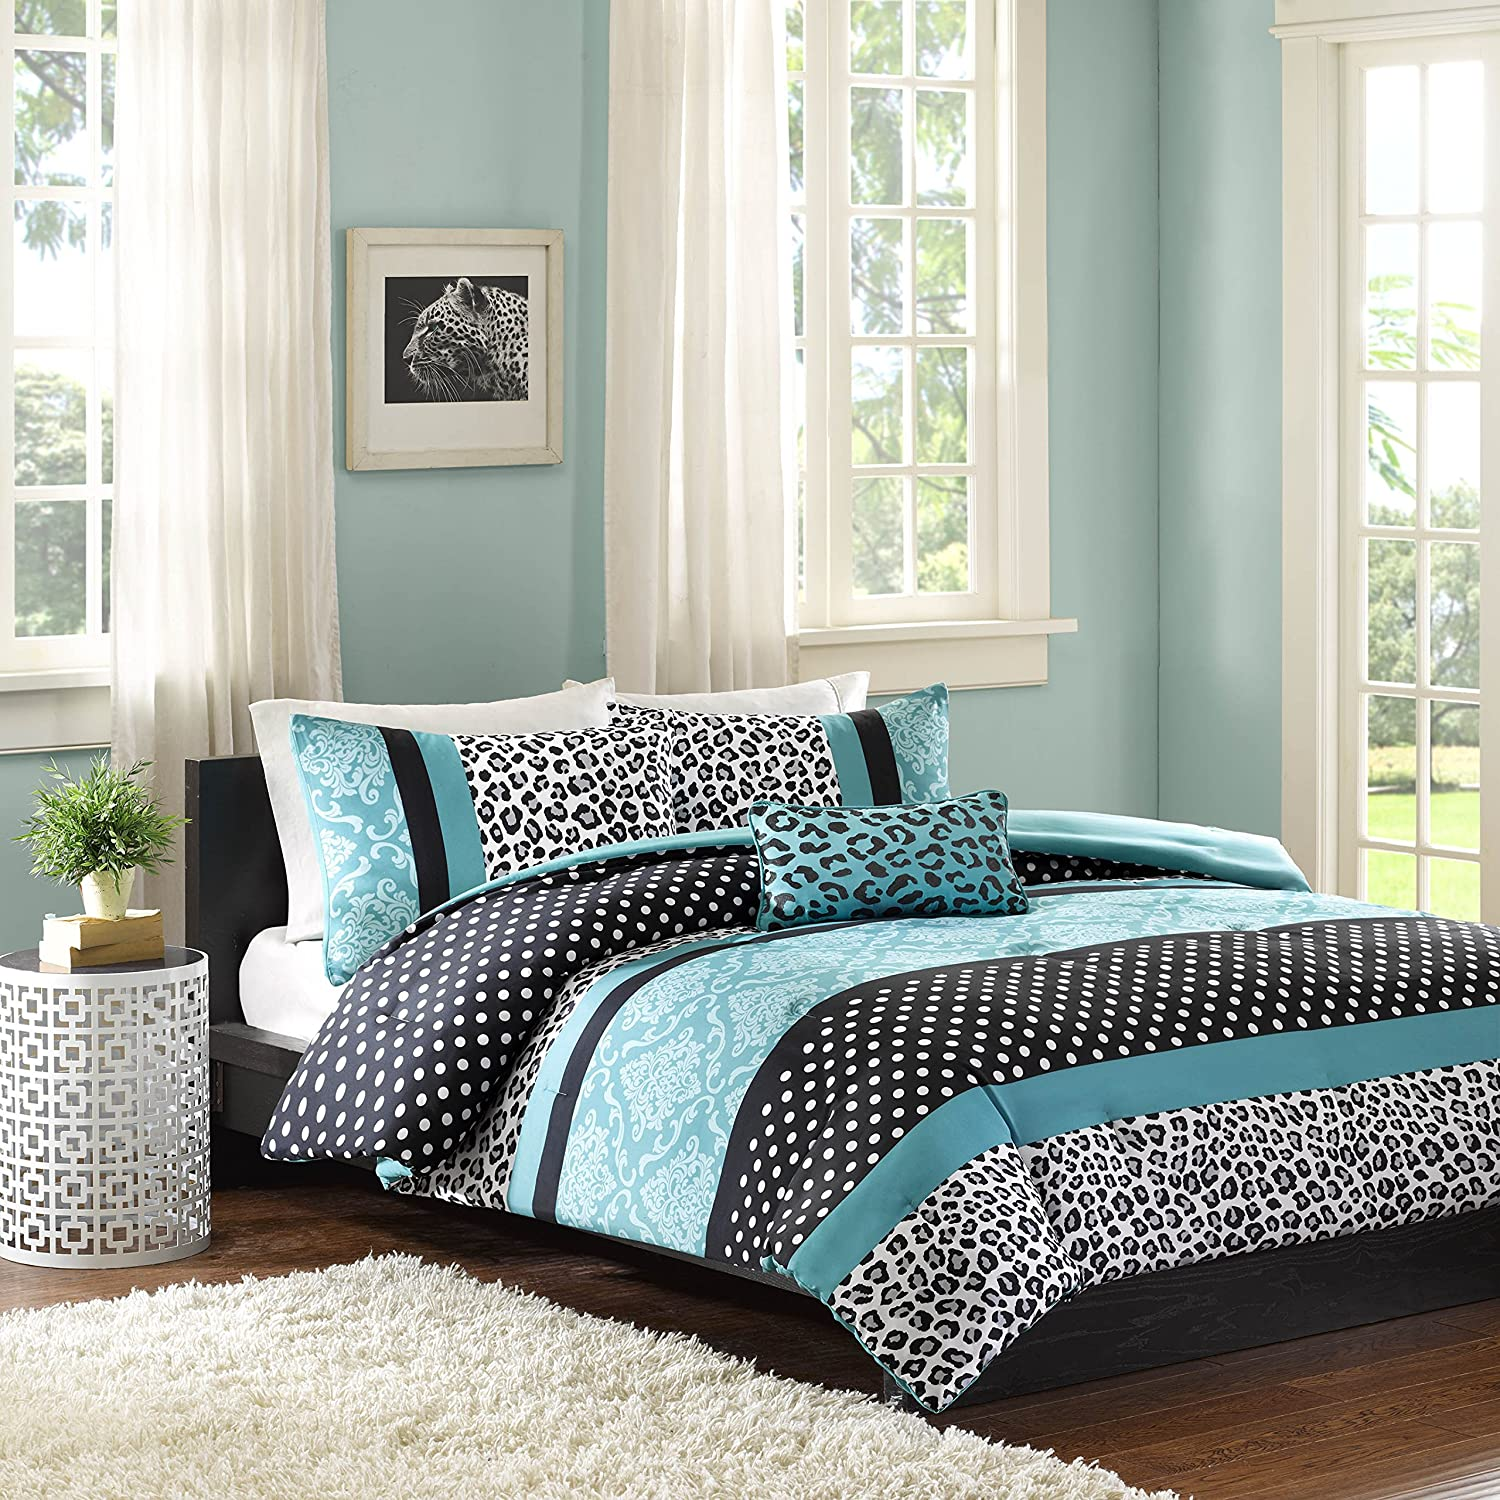 mainstays bed full bedding comforters walmart a gray bag coral complete sets set in comforter damask regarding